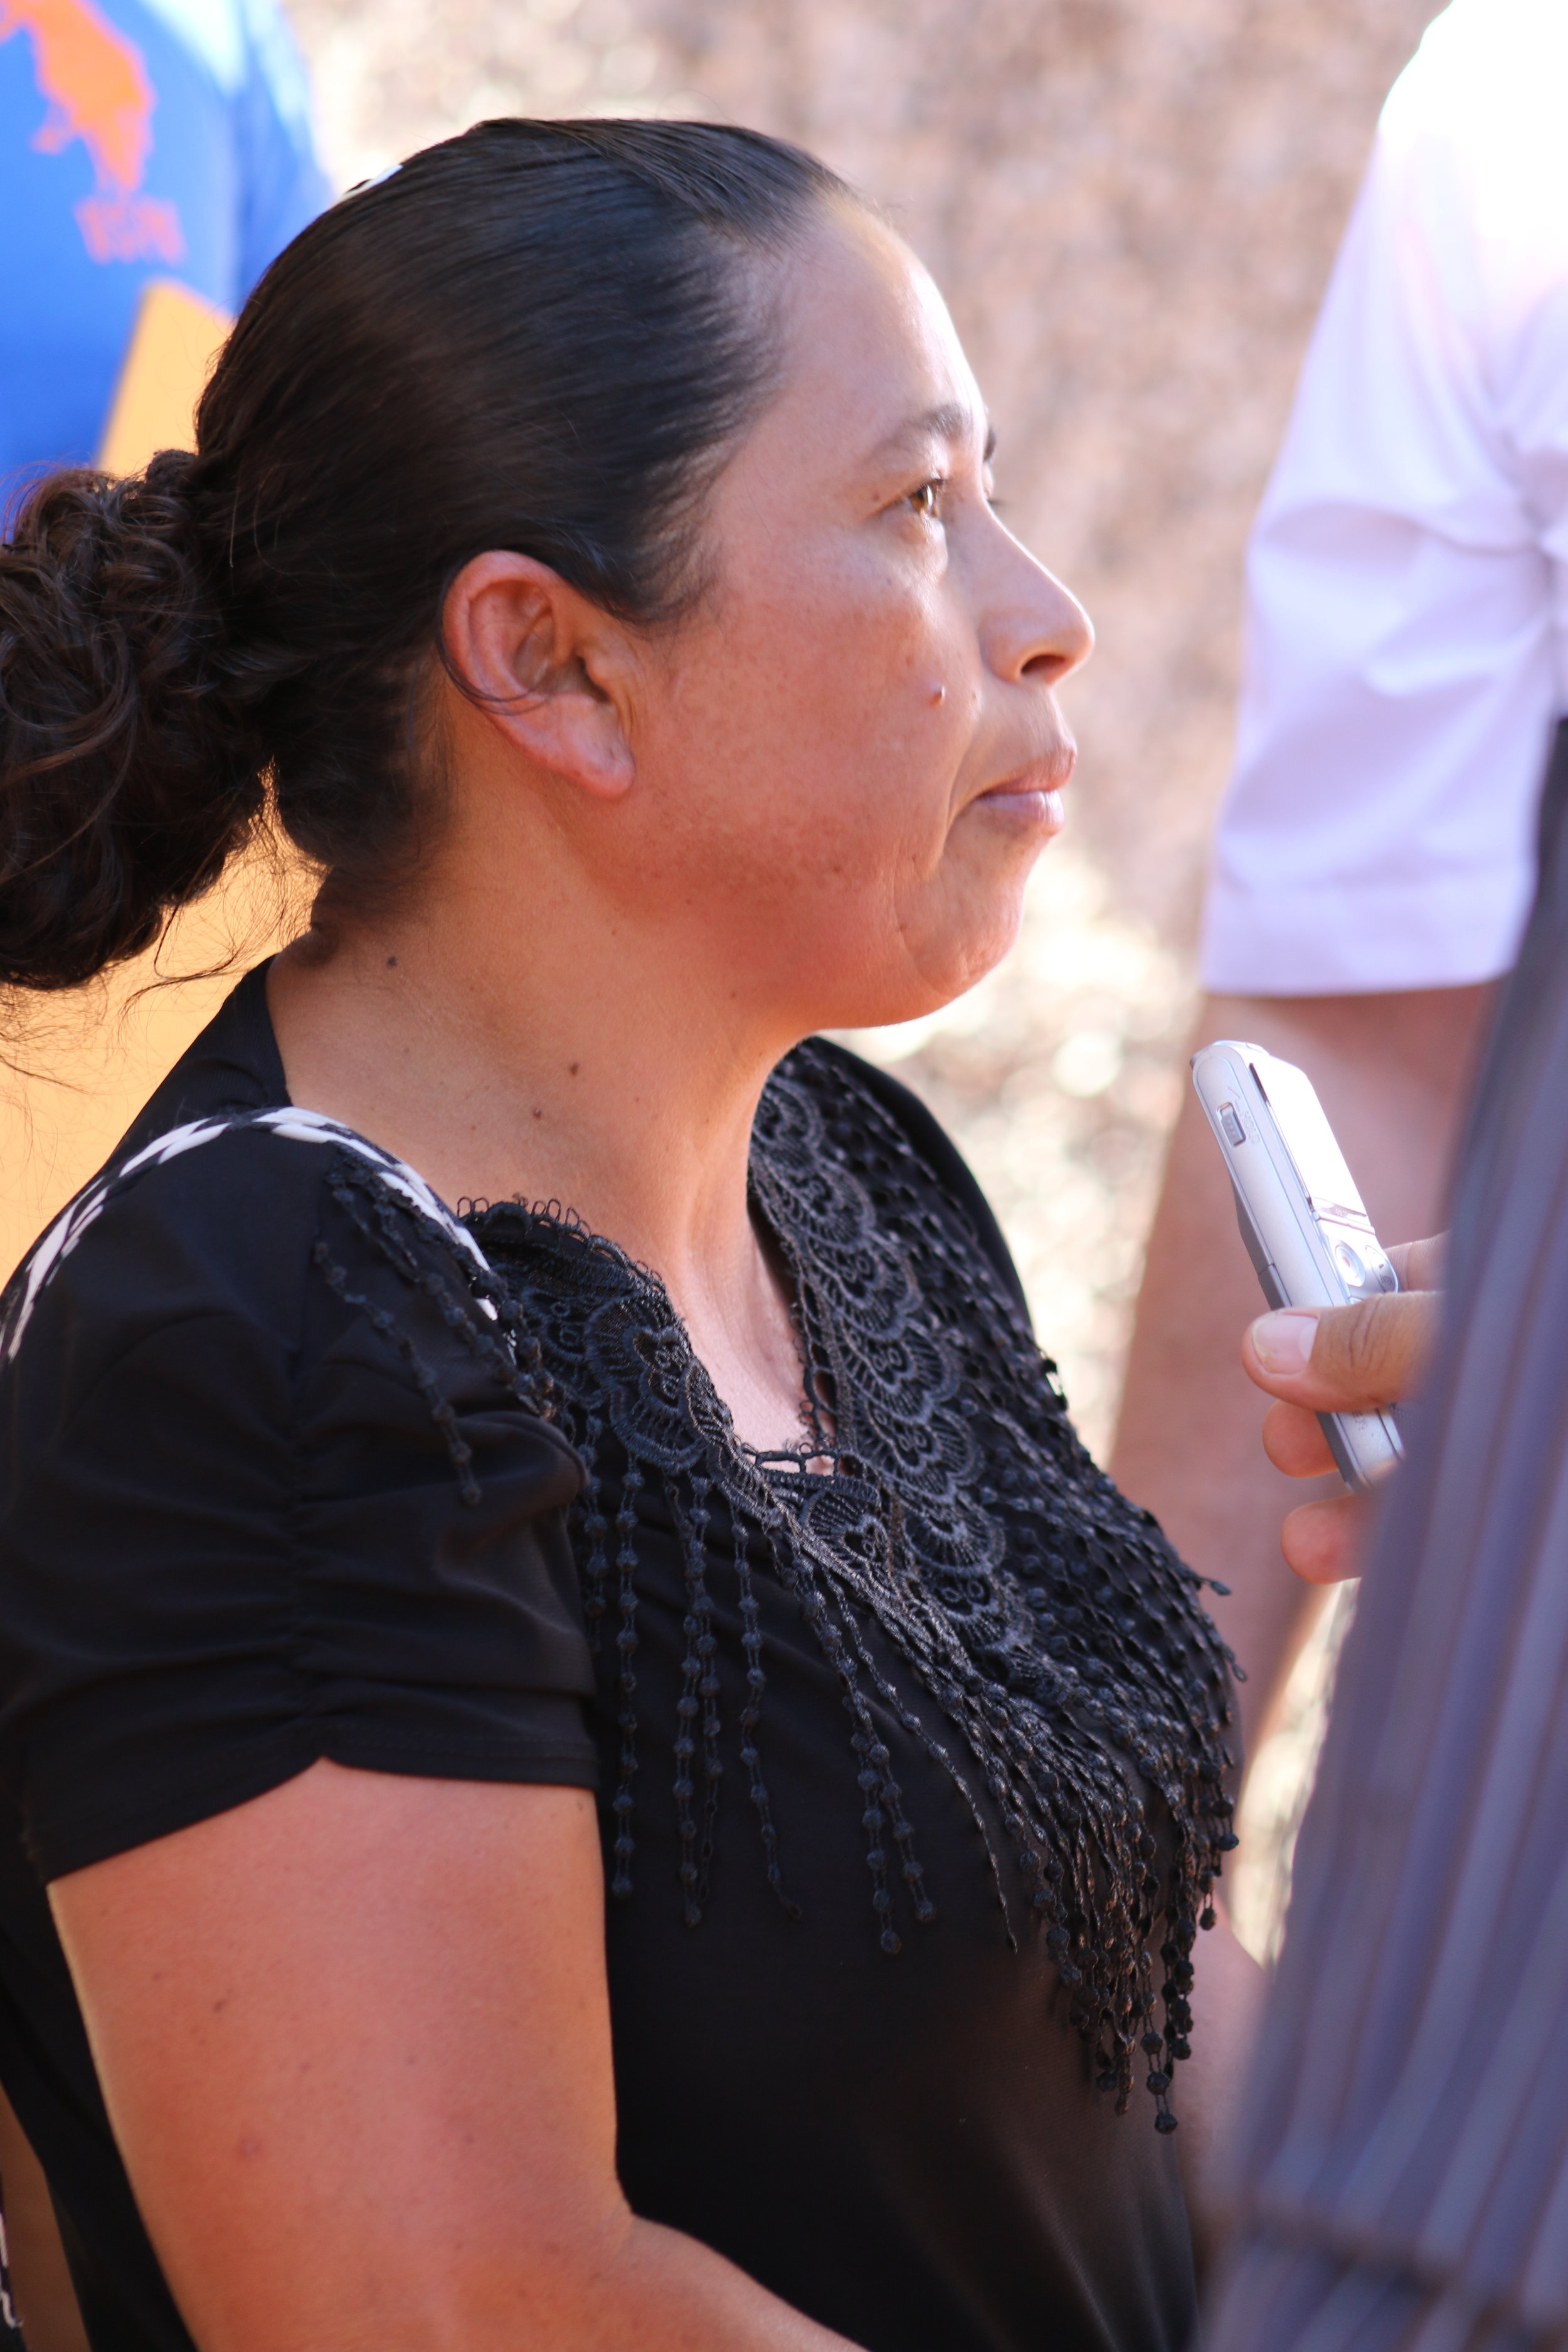 Witness recounts her experience at the massacre / Photo Cristosal